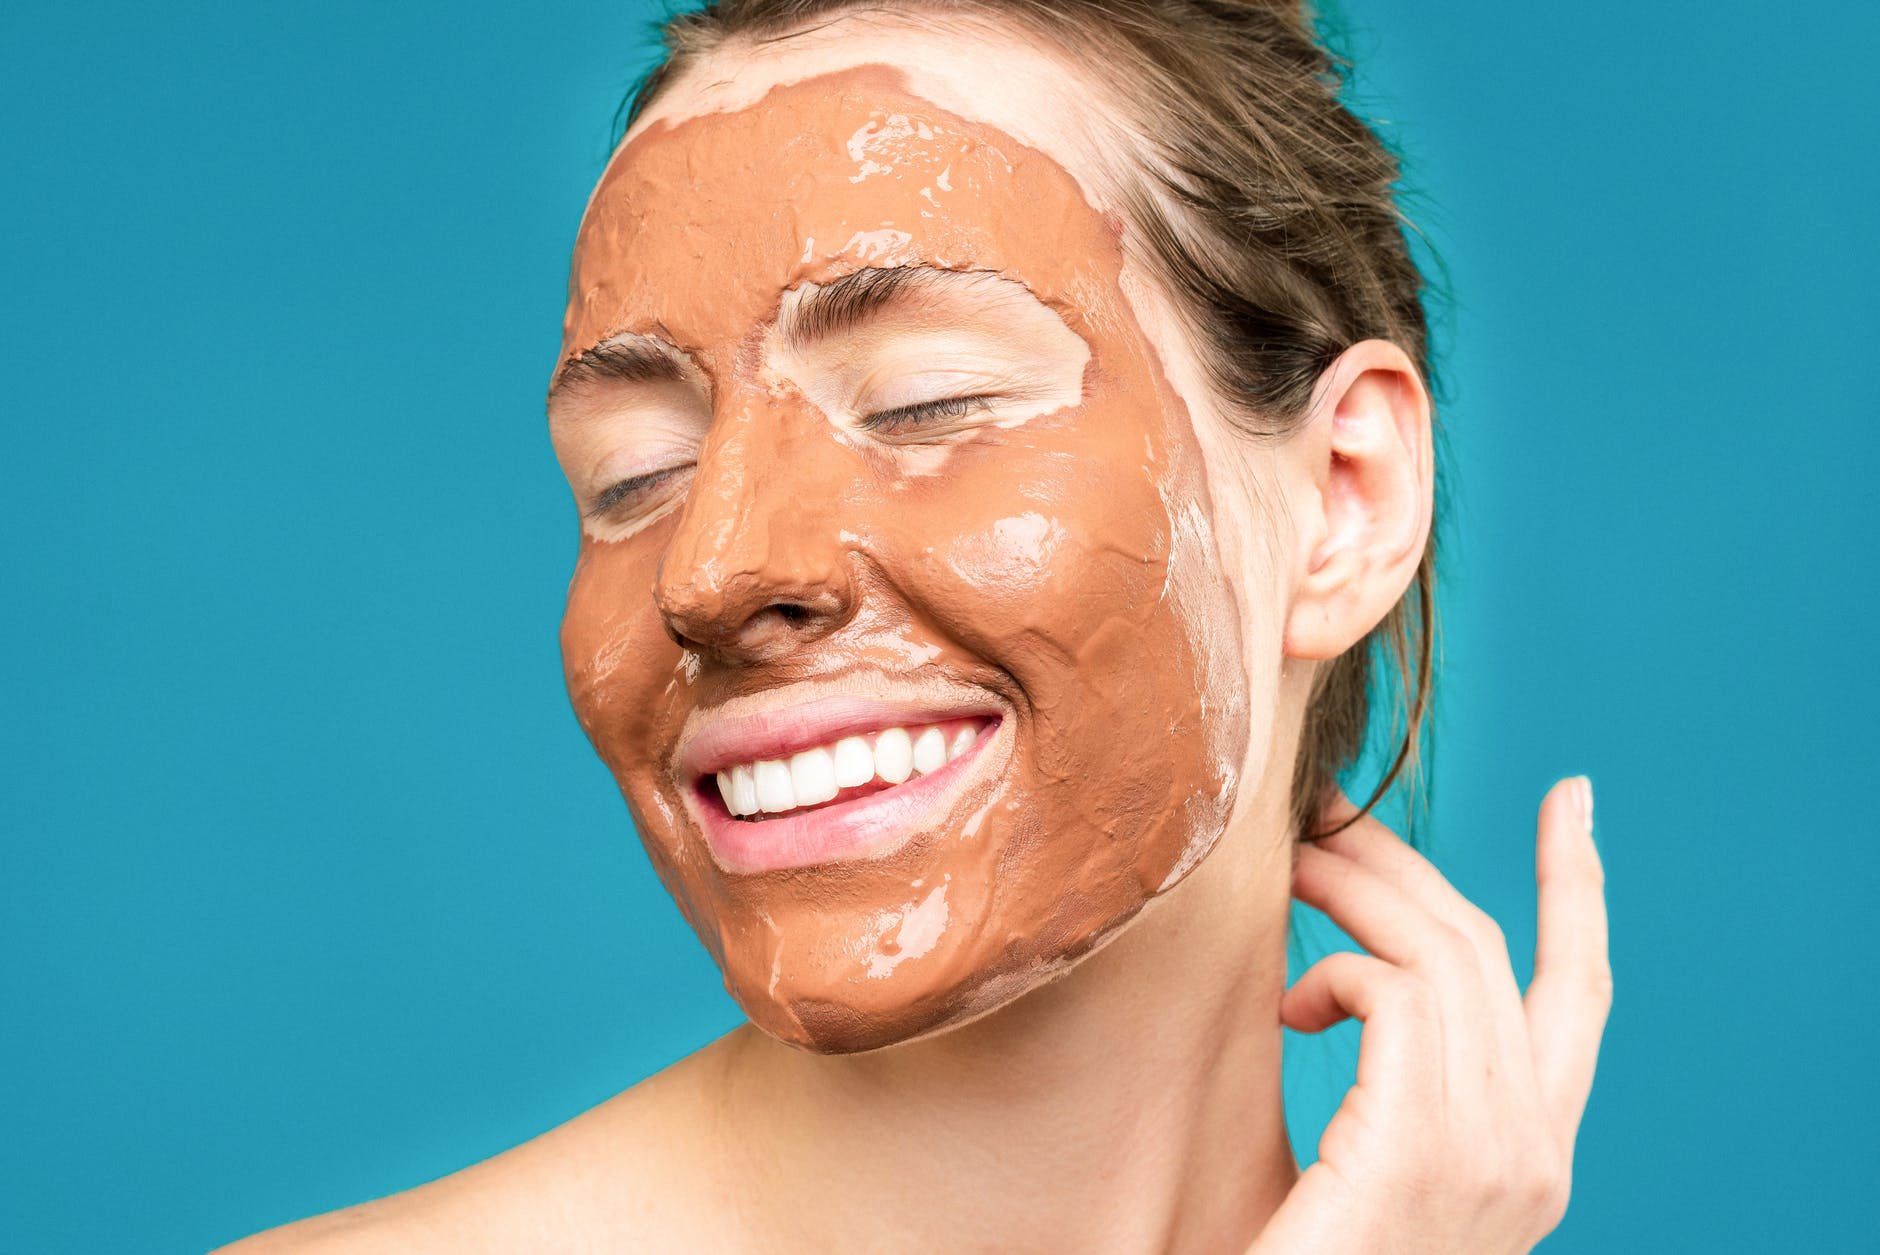 6 Best Mud Masks For The Face – Top Picks Of 2021